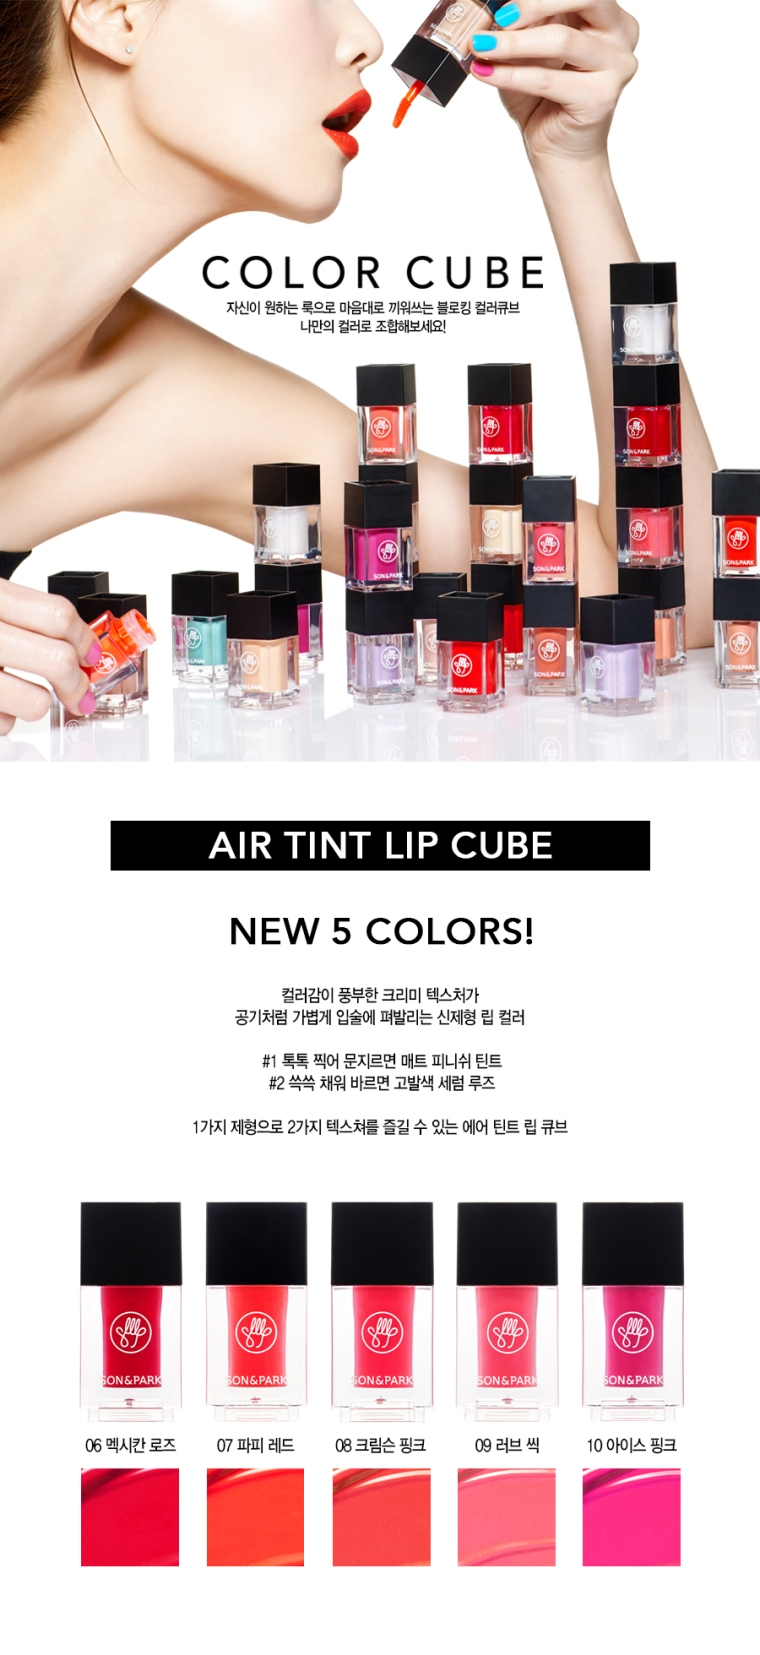 Air Tint Lip Cube2